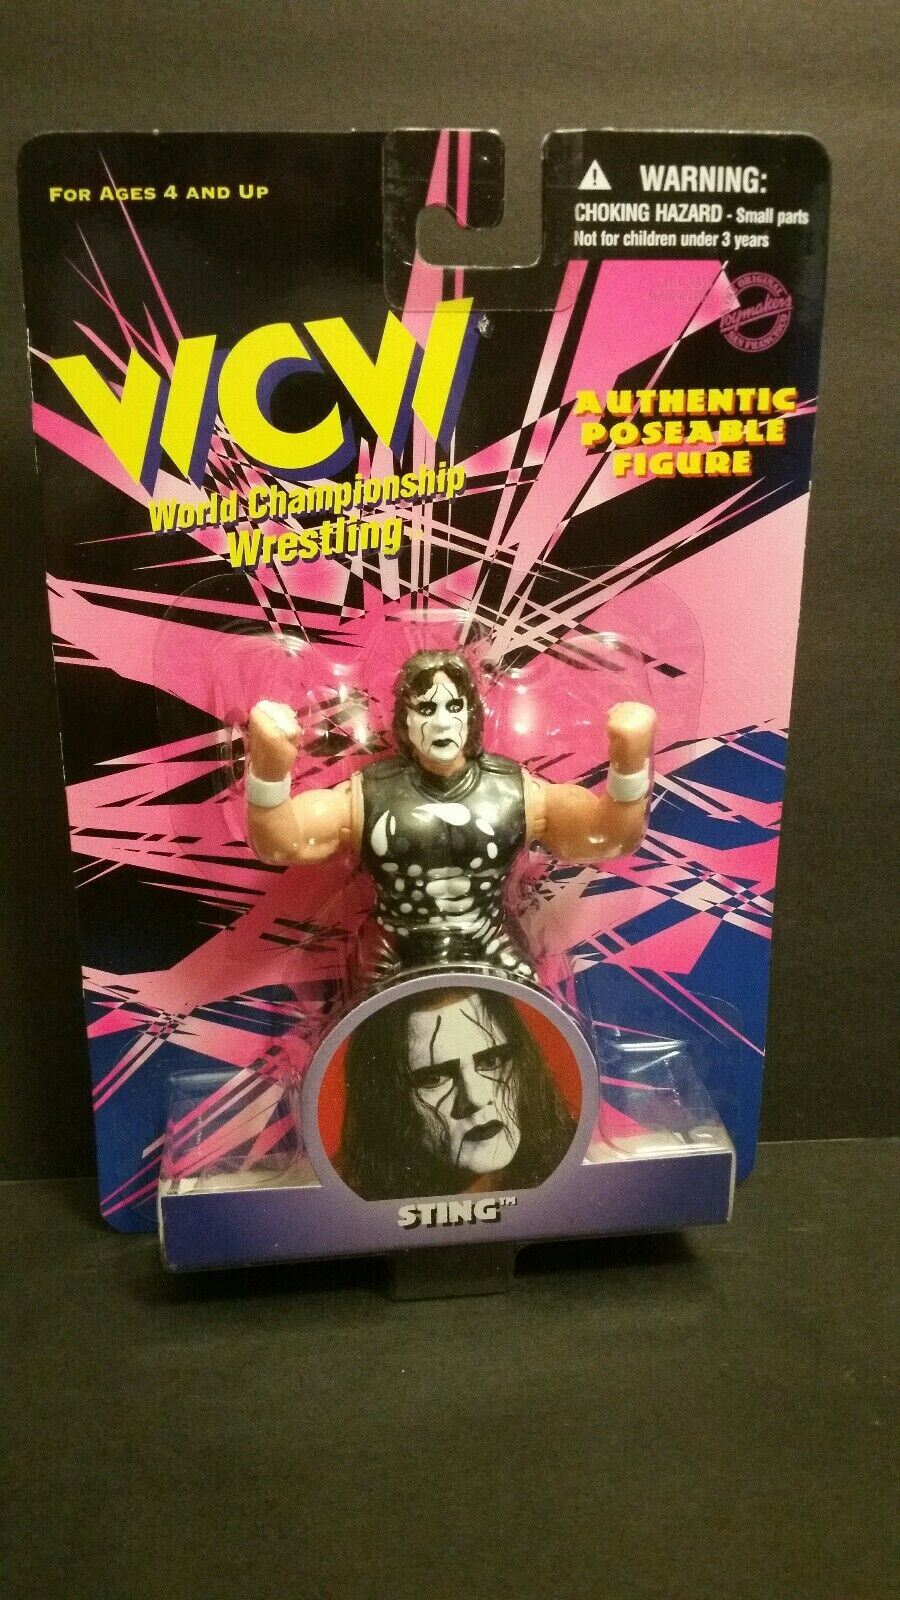 WCW STING AUTHENTIC POSEABLE FIGURE(077)